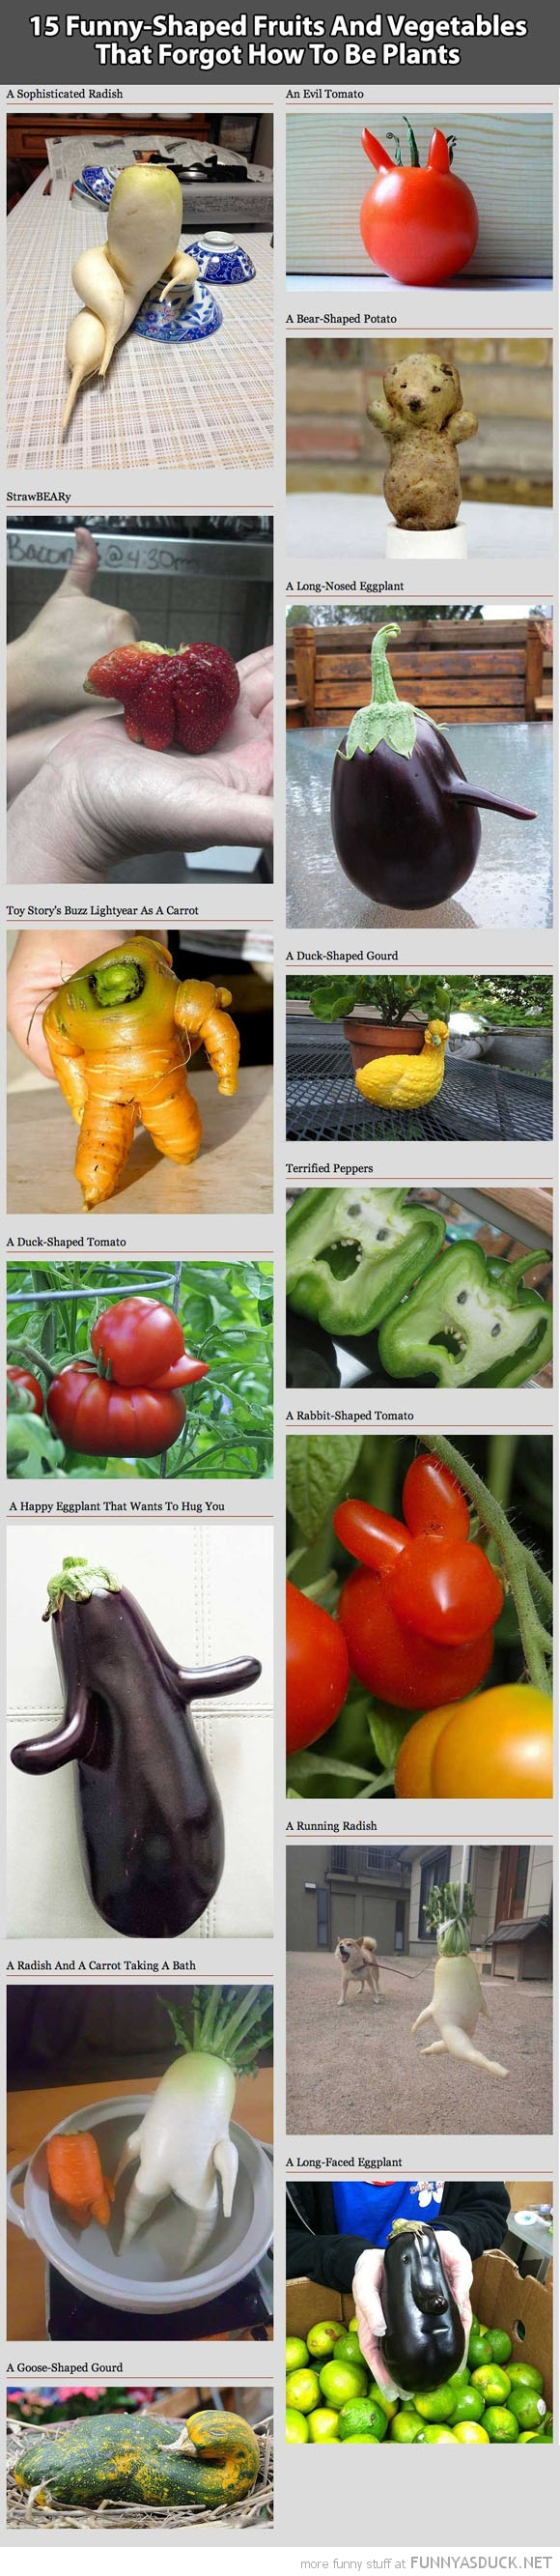 Funny Shaped Fruit & Veg